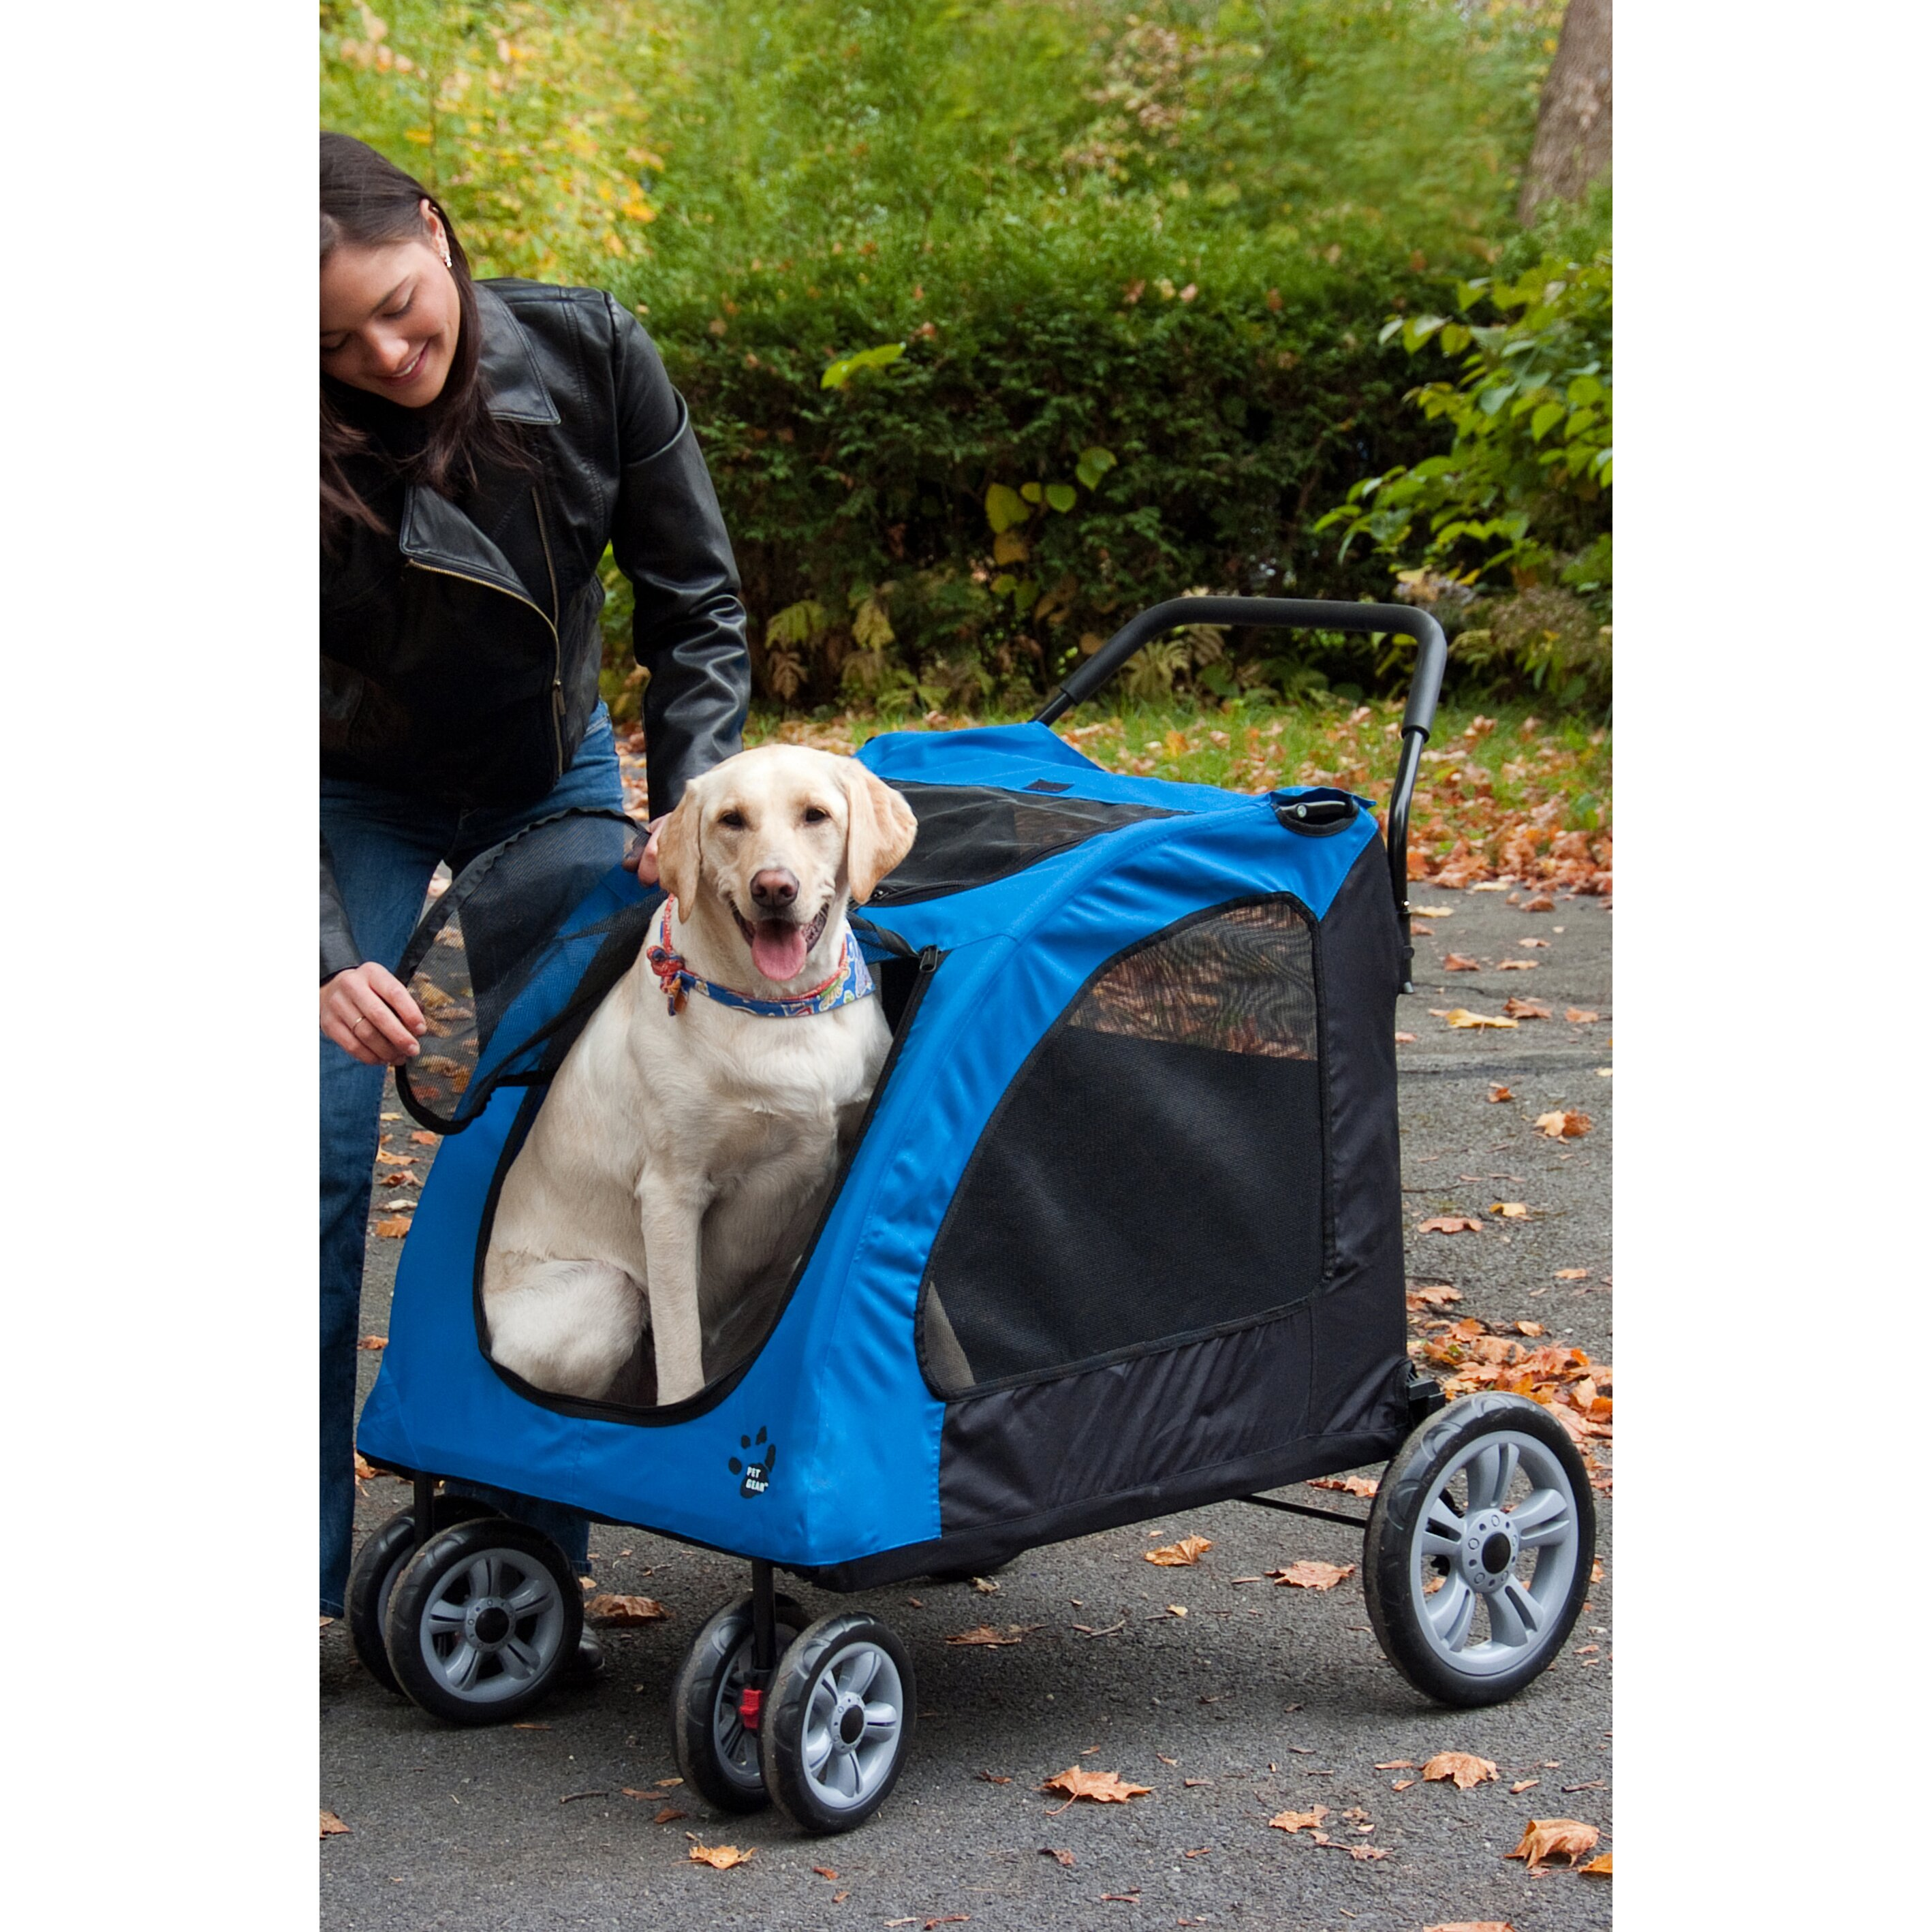 Pet Gear Expedition Standard Pet Stroller Amp Reviews Wayfair